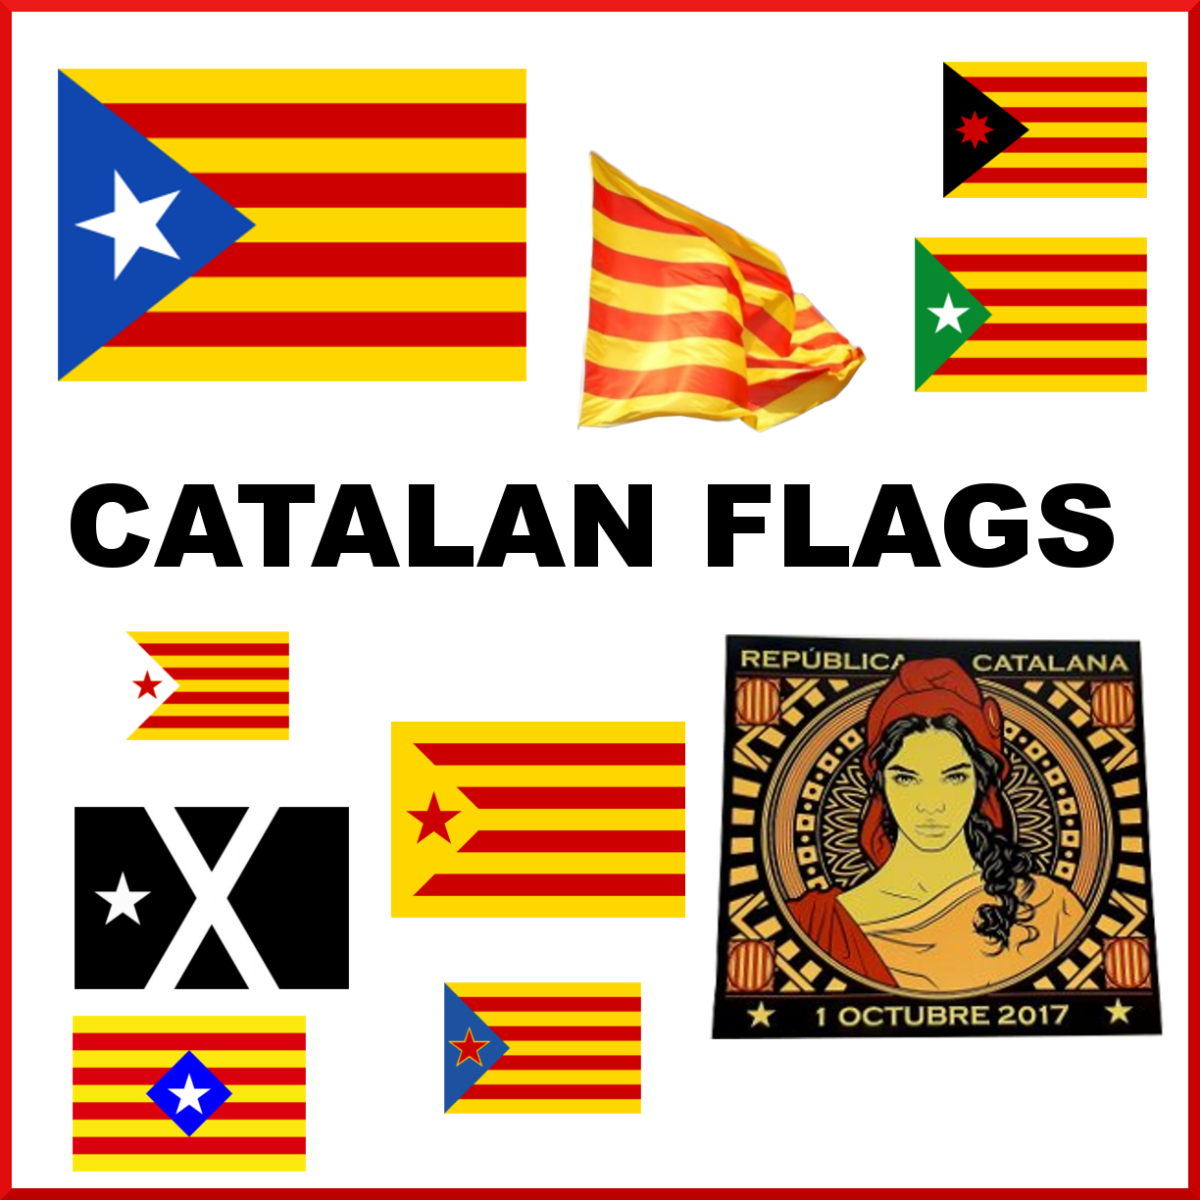 Catalan flags explained